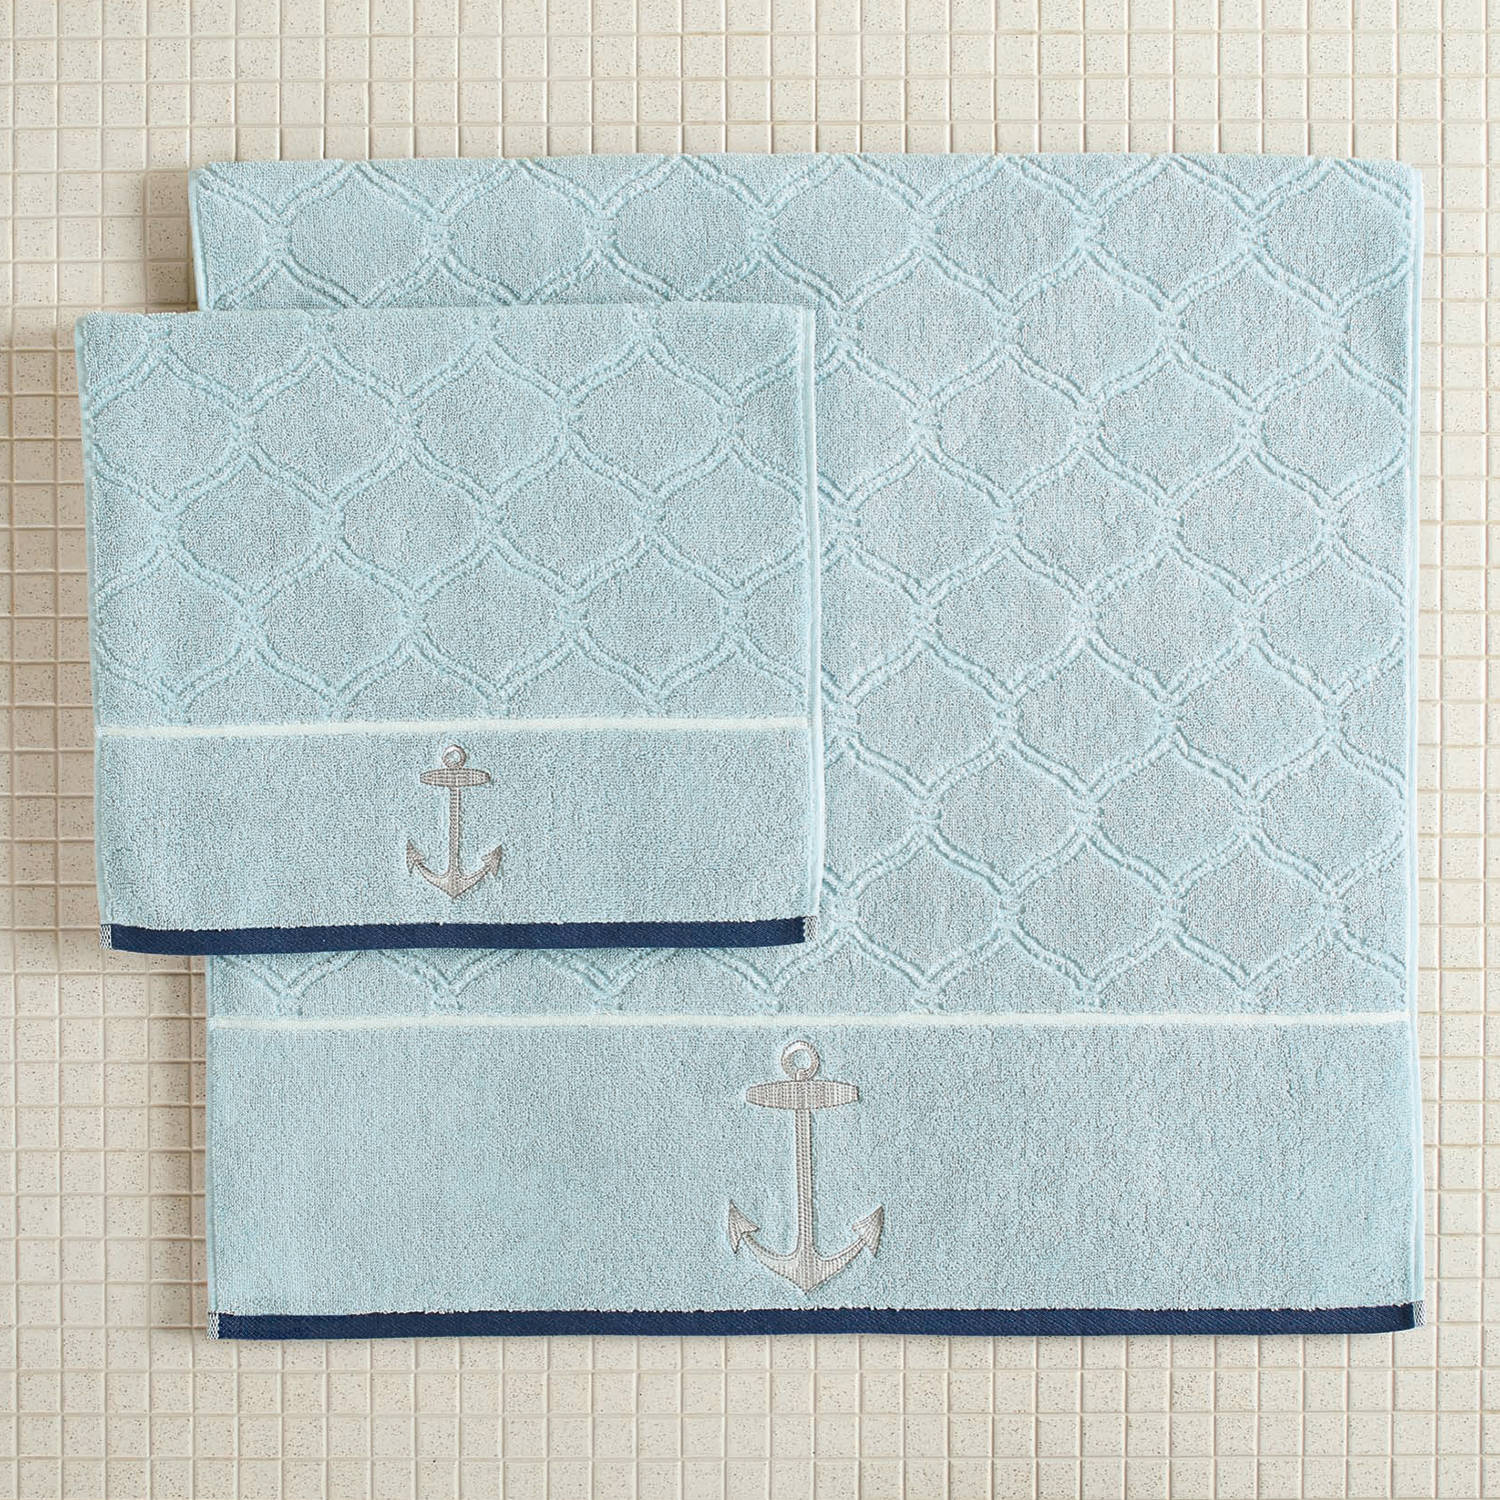 Better Homes and Gardens Nautical Bath Towel Set